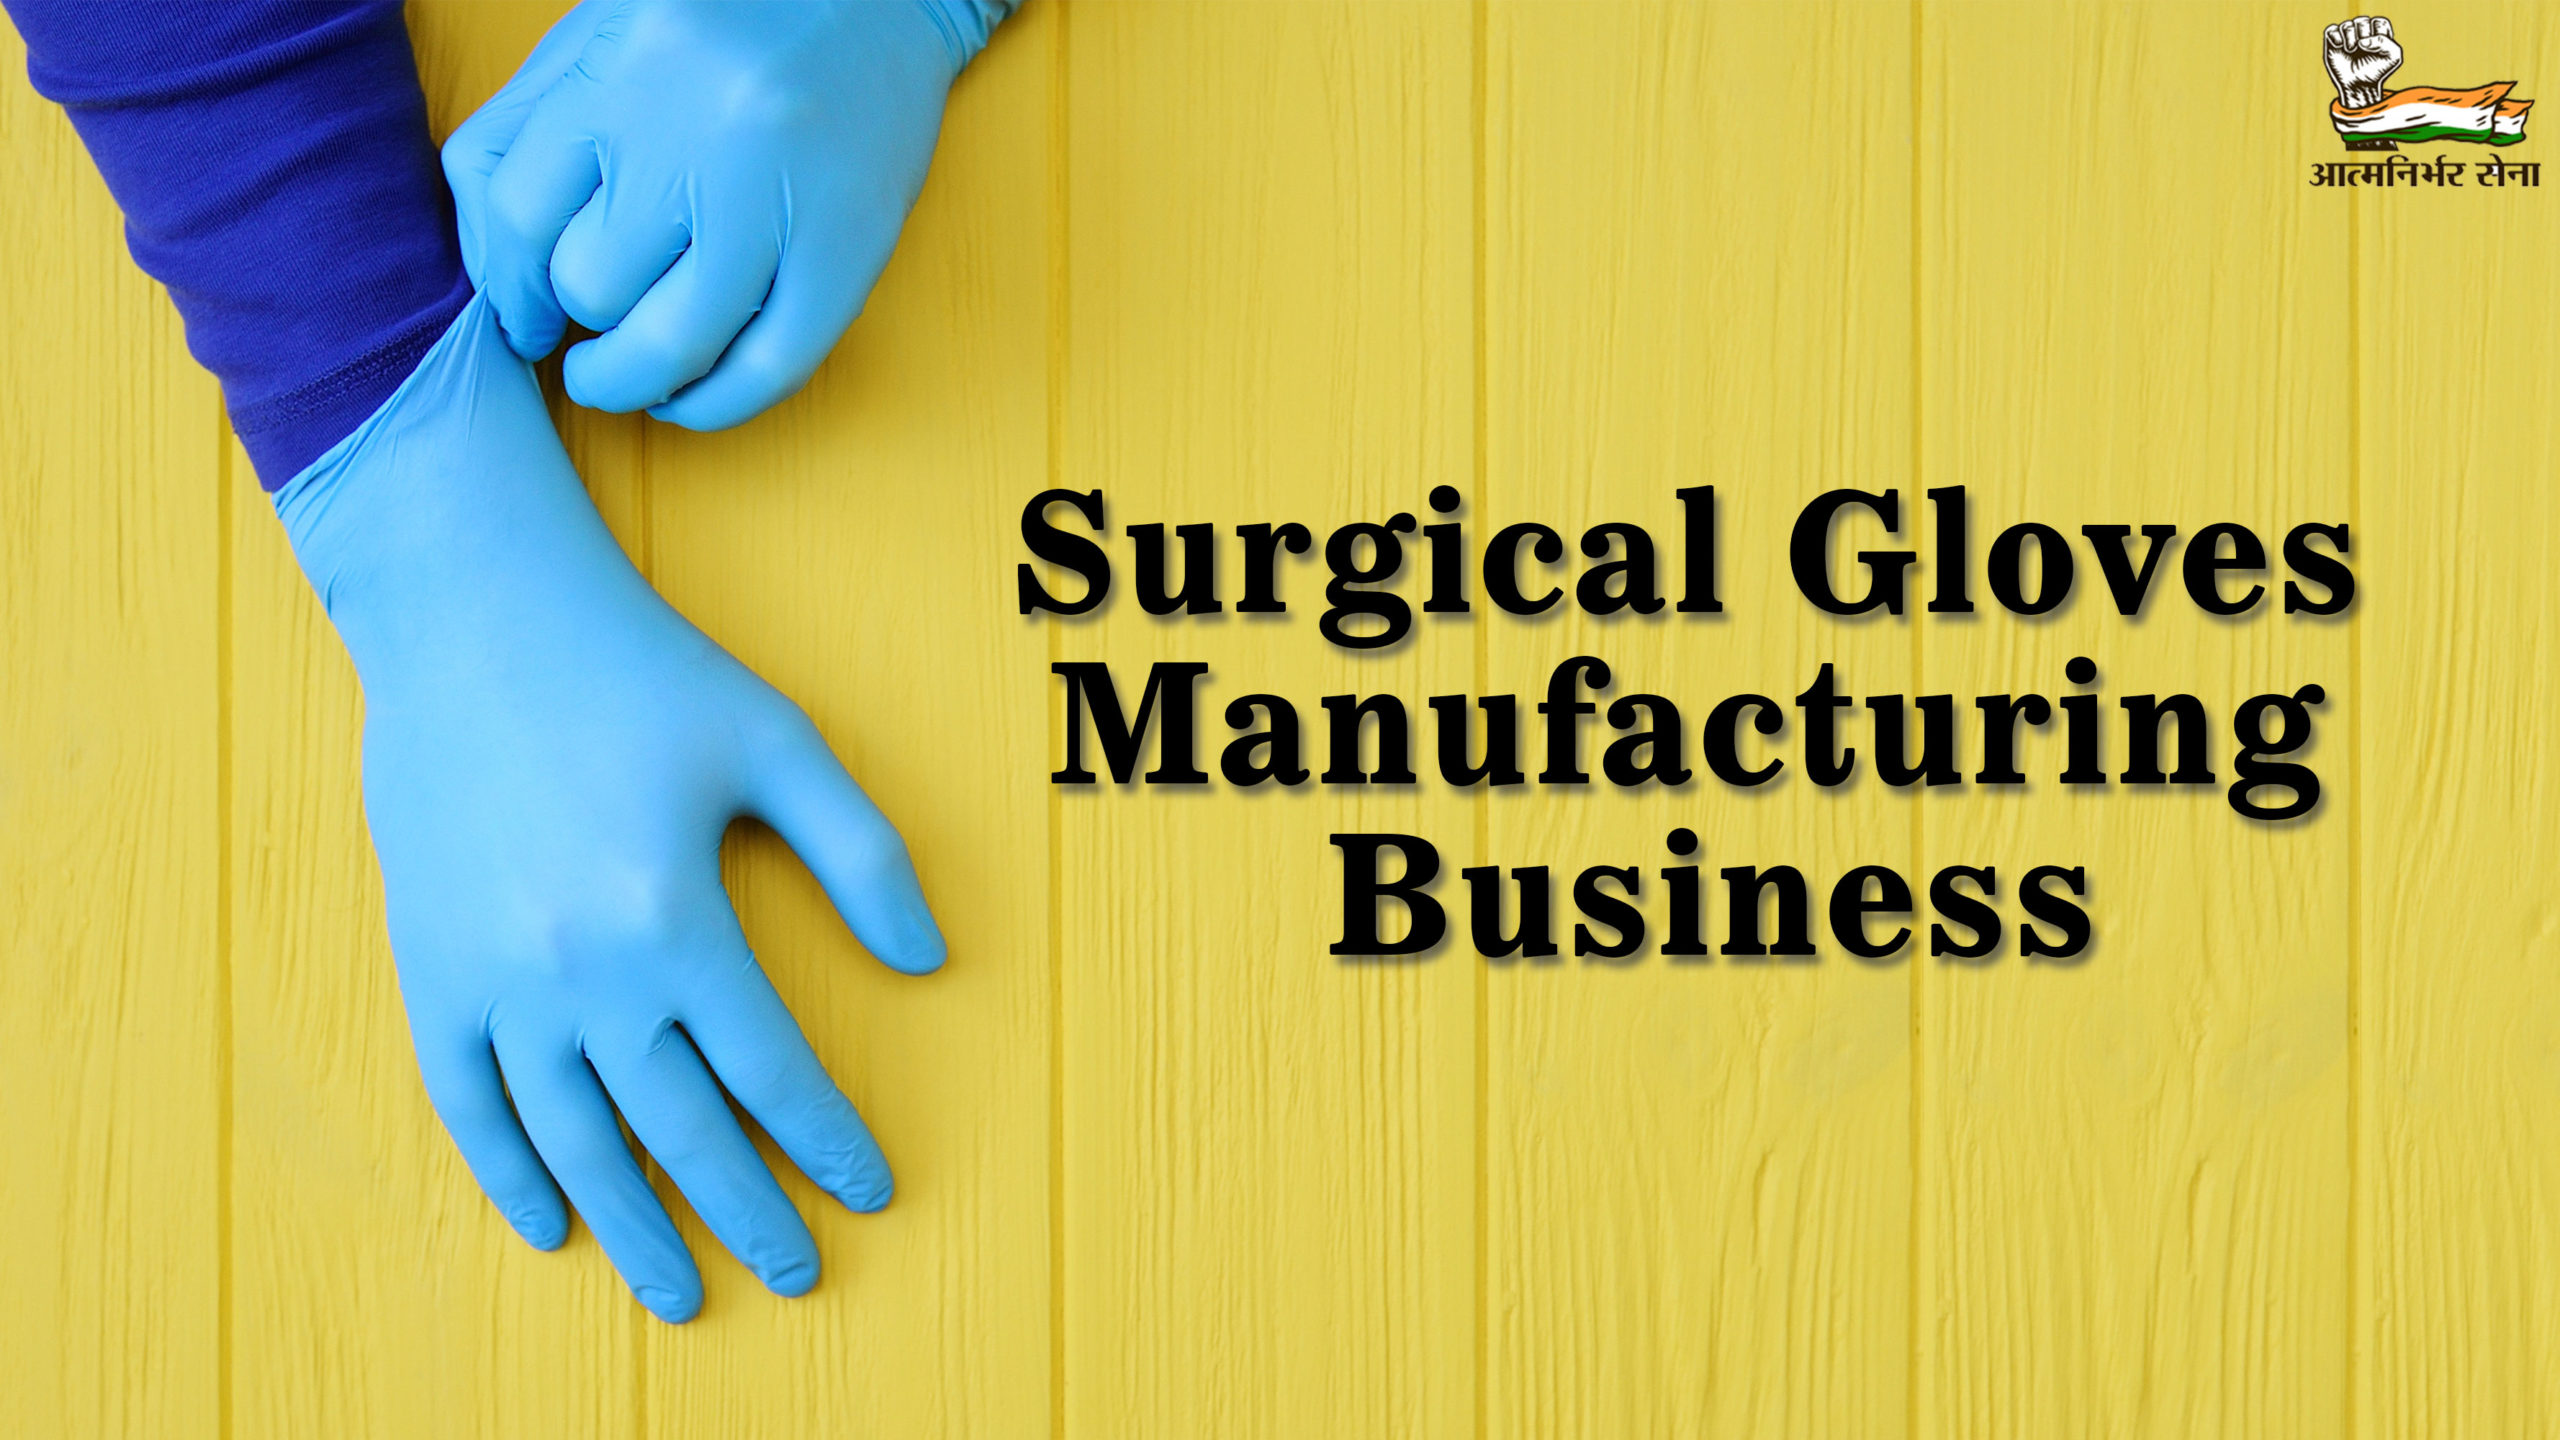 Surgical Gloves Manufacturing Business- A Lucrative Idea to Invest In